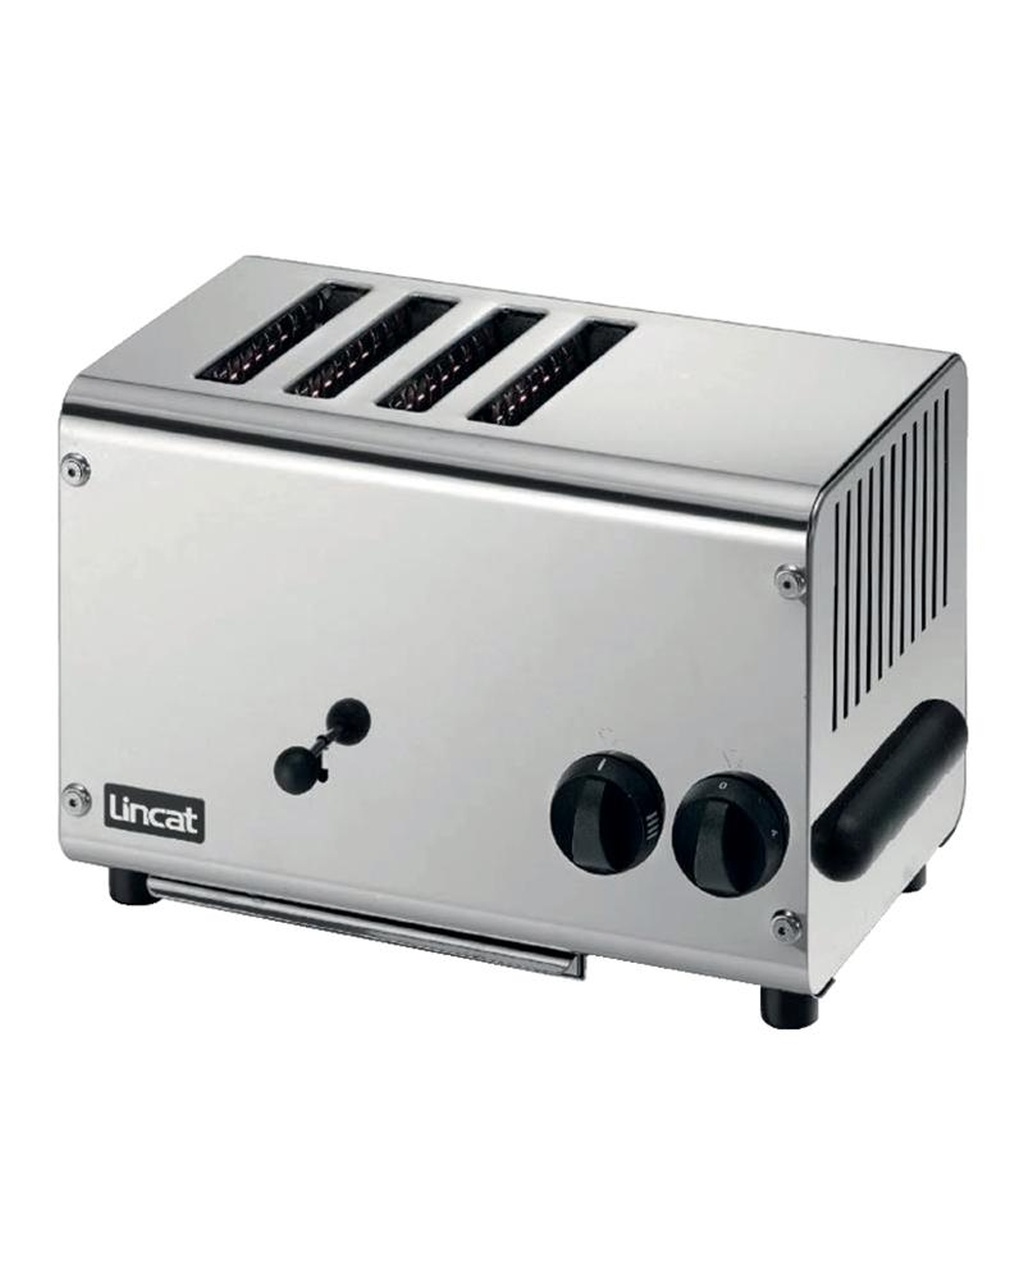 4 Slot Commercial Toaster